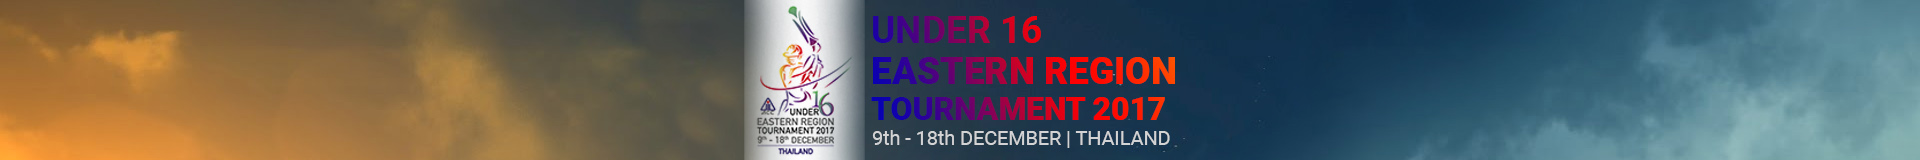 Eastern Region Tournament - header